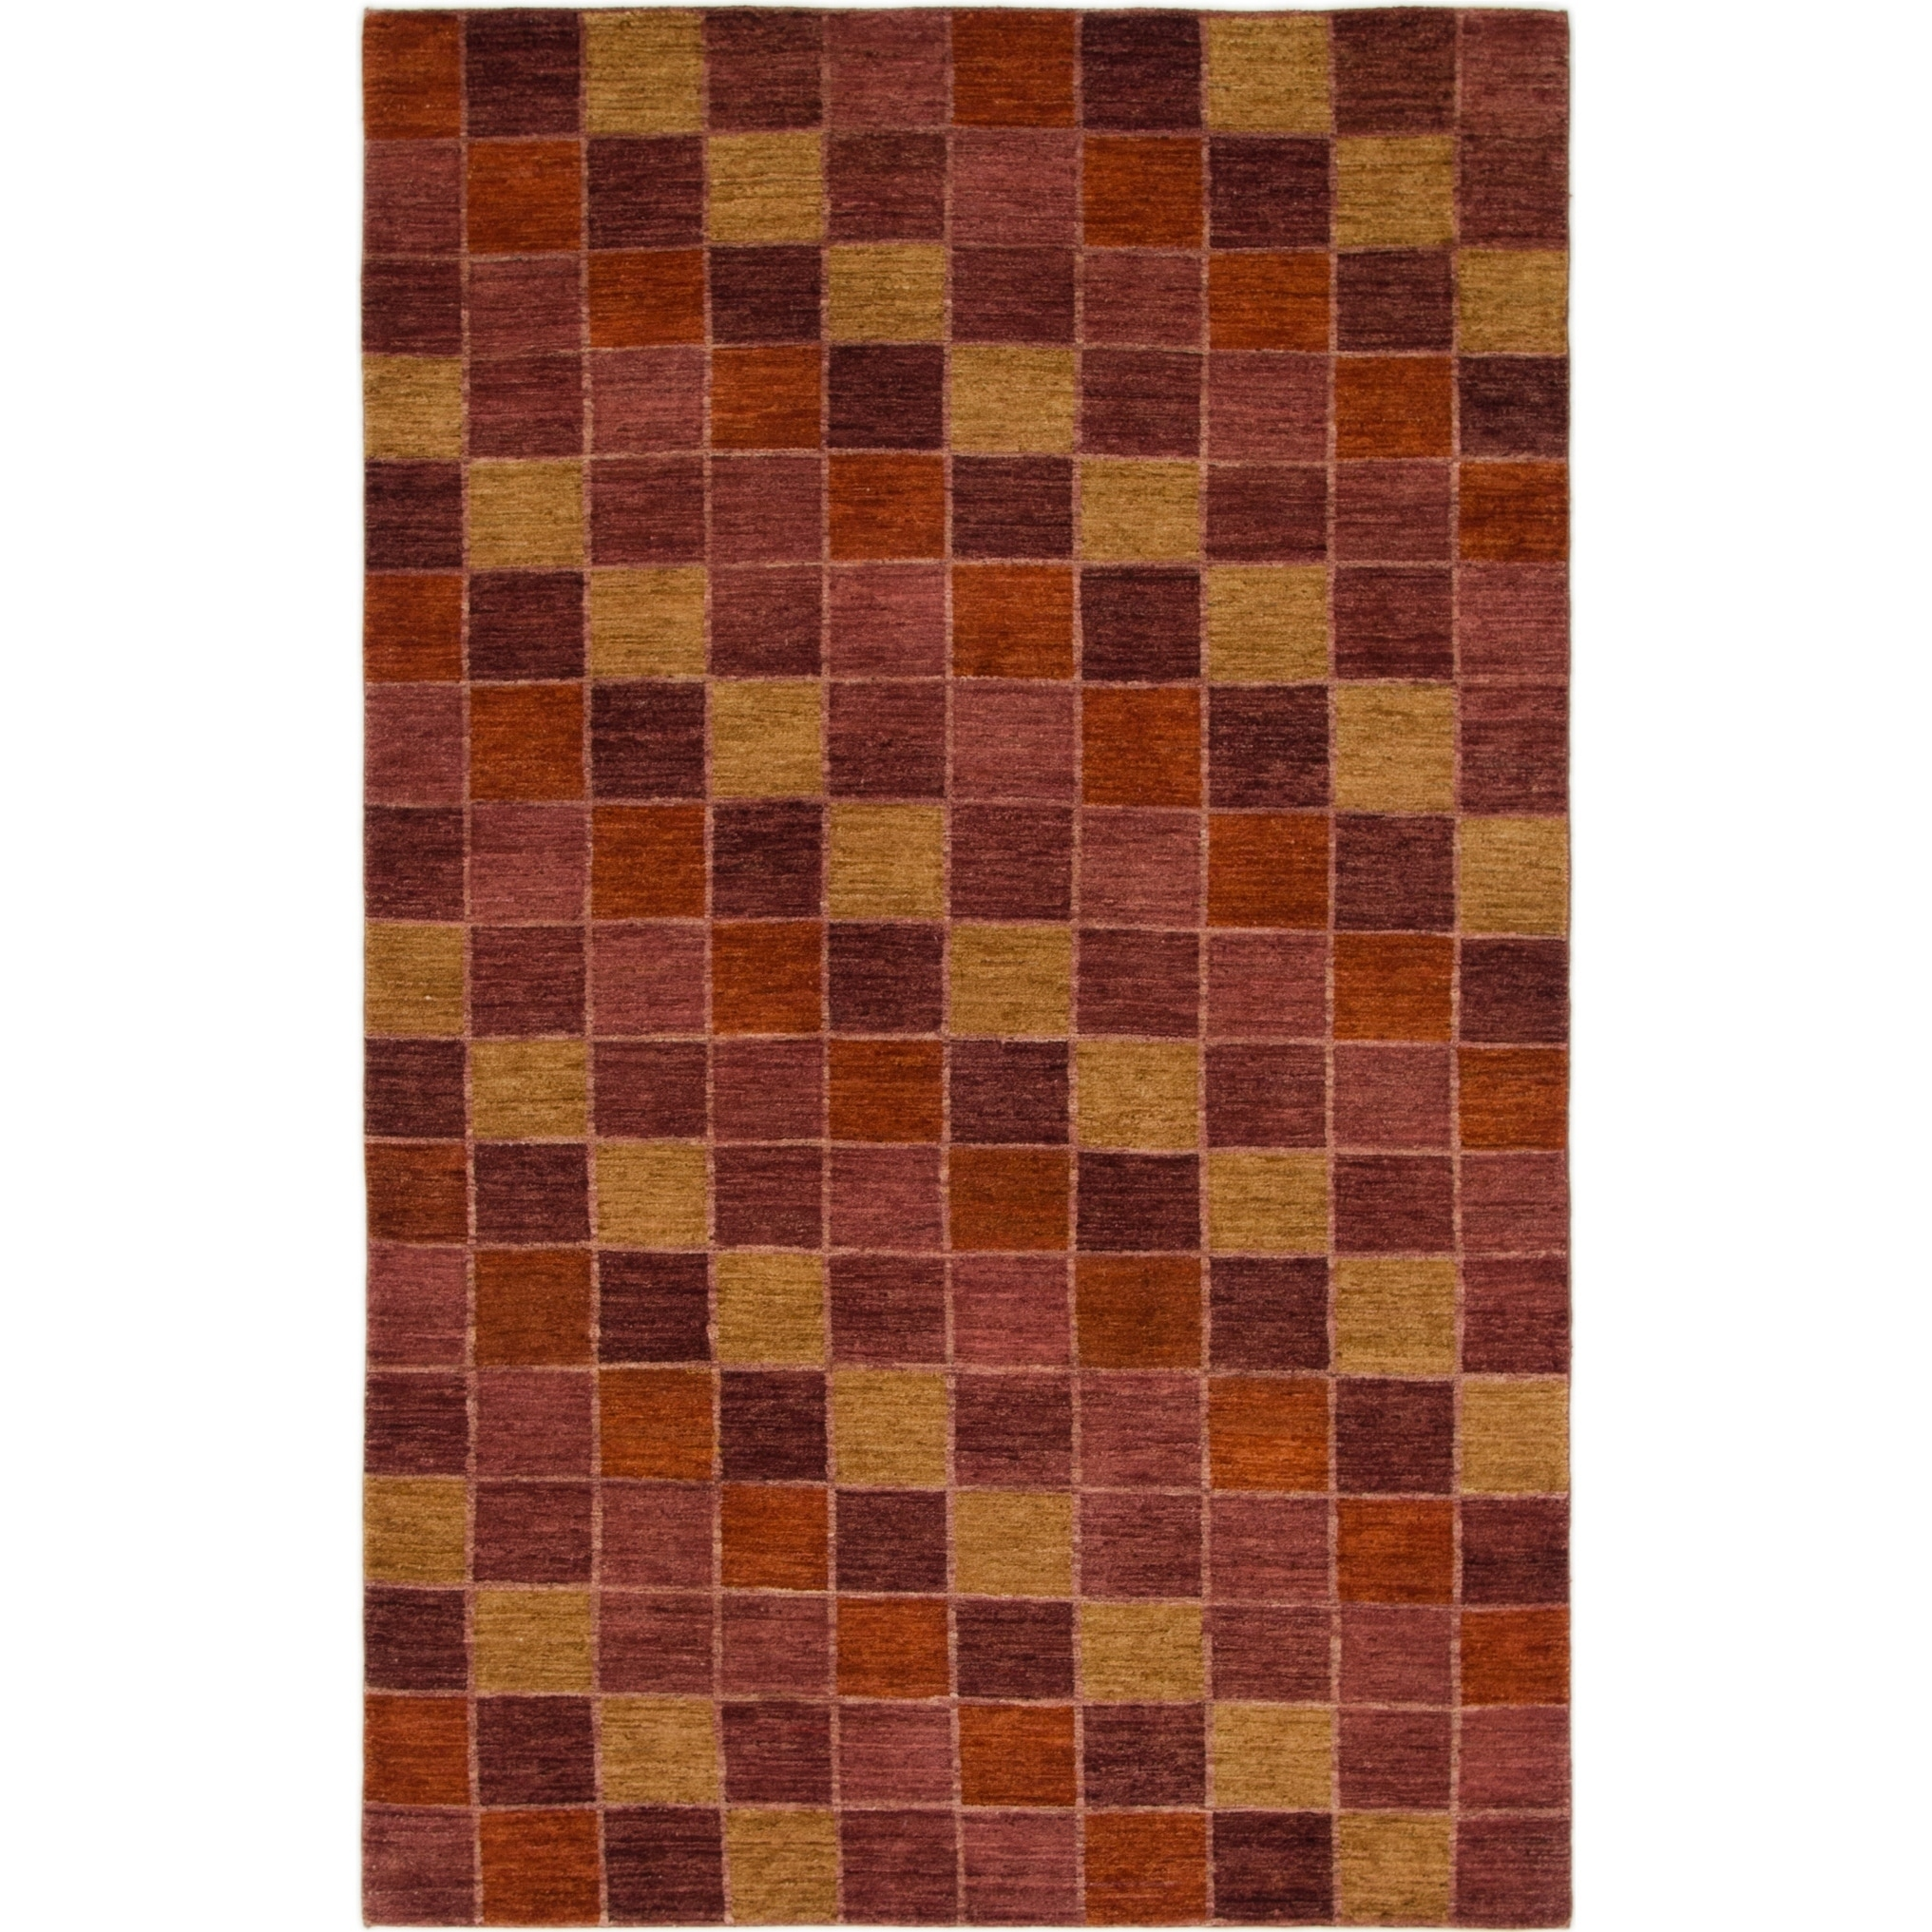 Hand Knotted Kashkuli Gabbeh Wool Area Rug - 5 2 x 8 3 (Rust Red - 5 2 x 8 3)